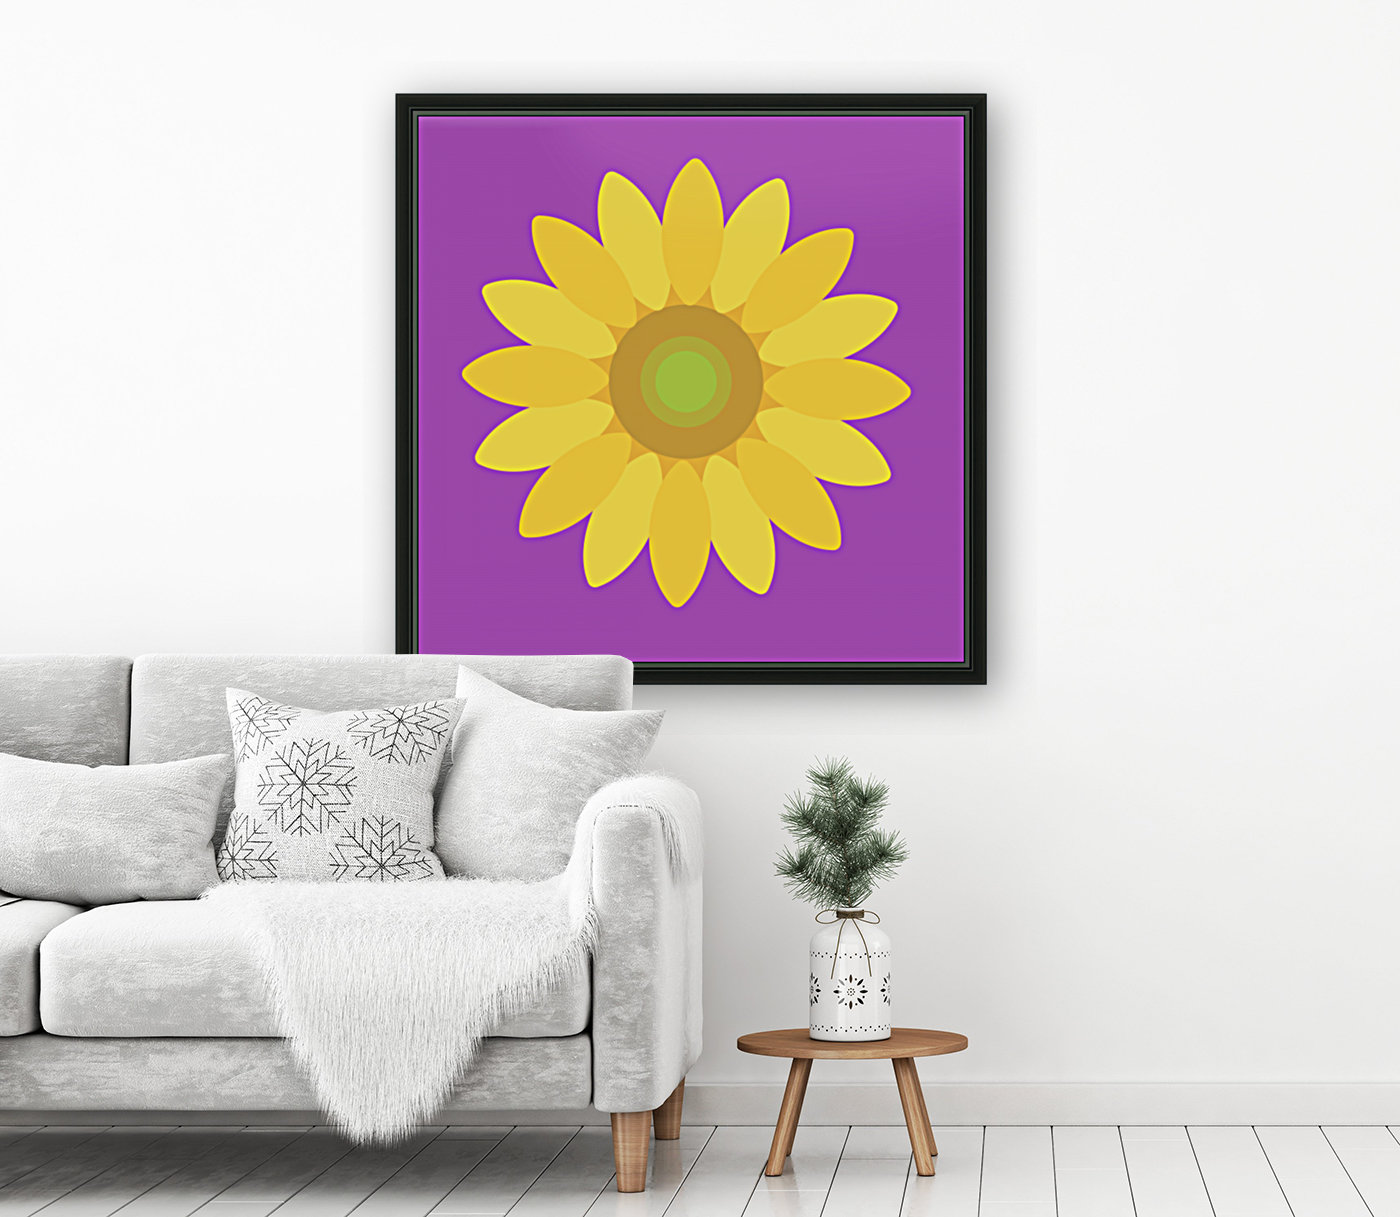 Sunflower (11)_1559876729.3965  Art